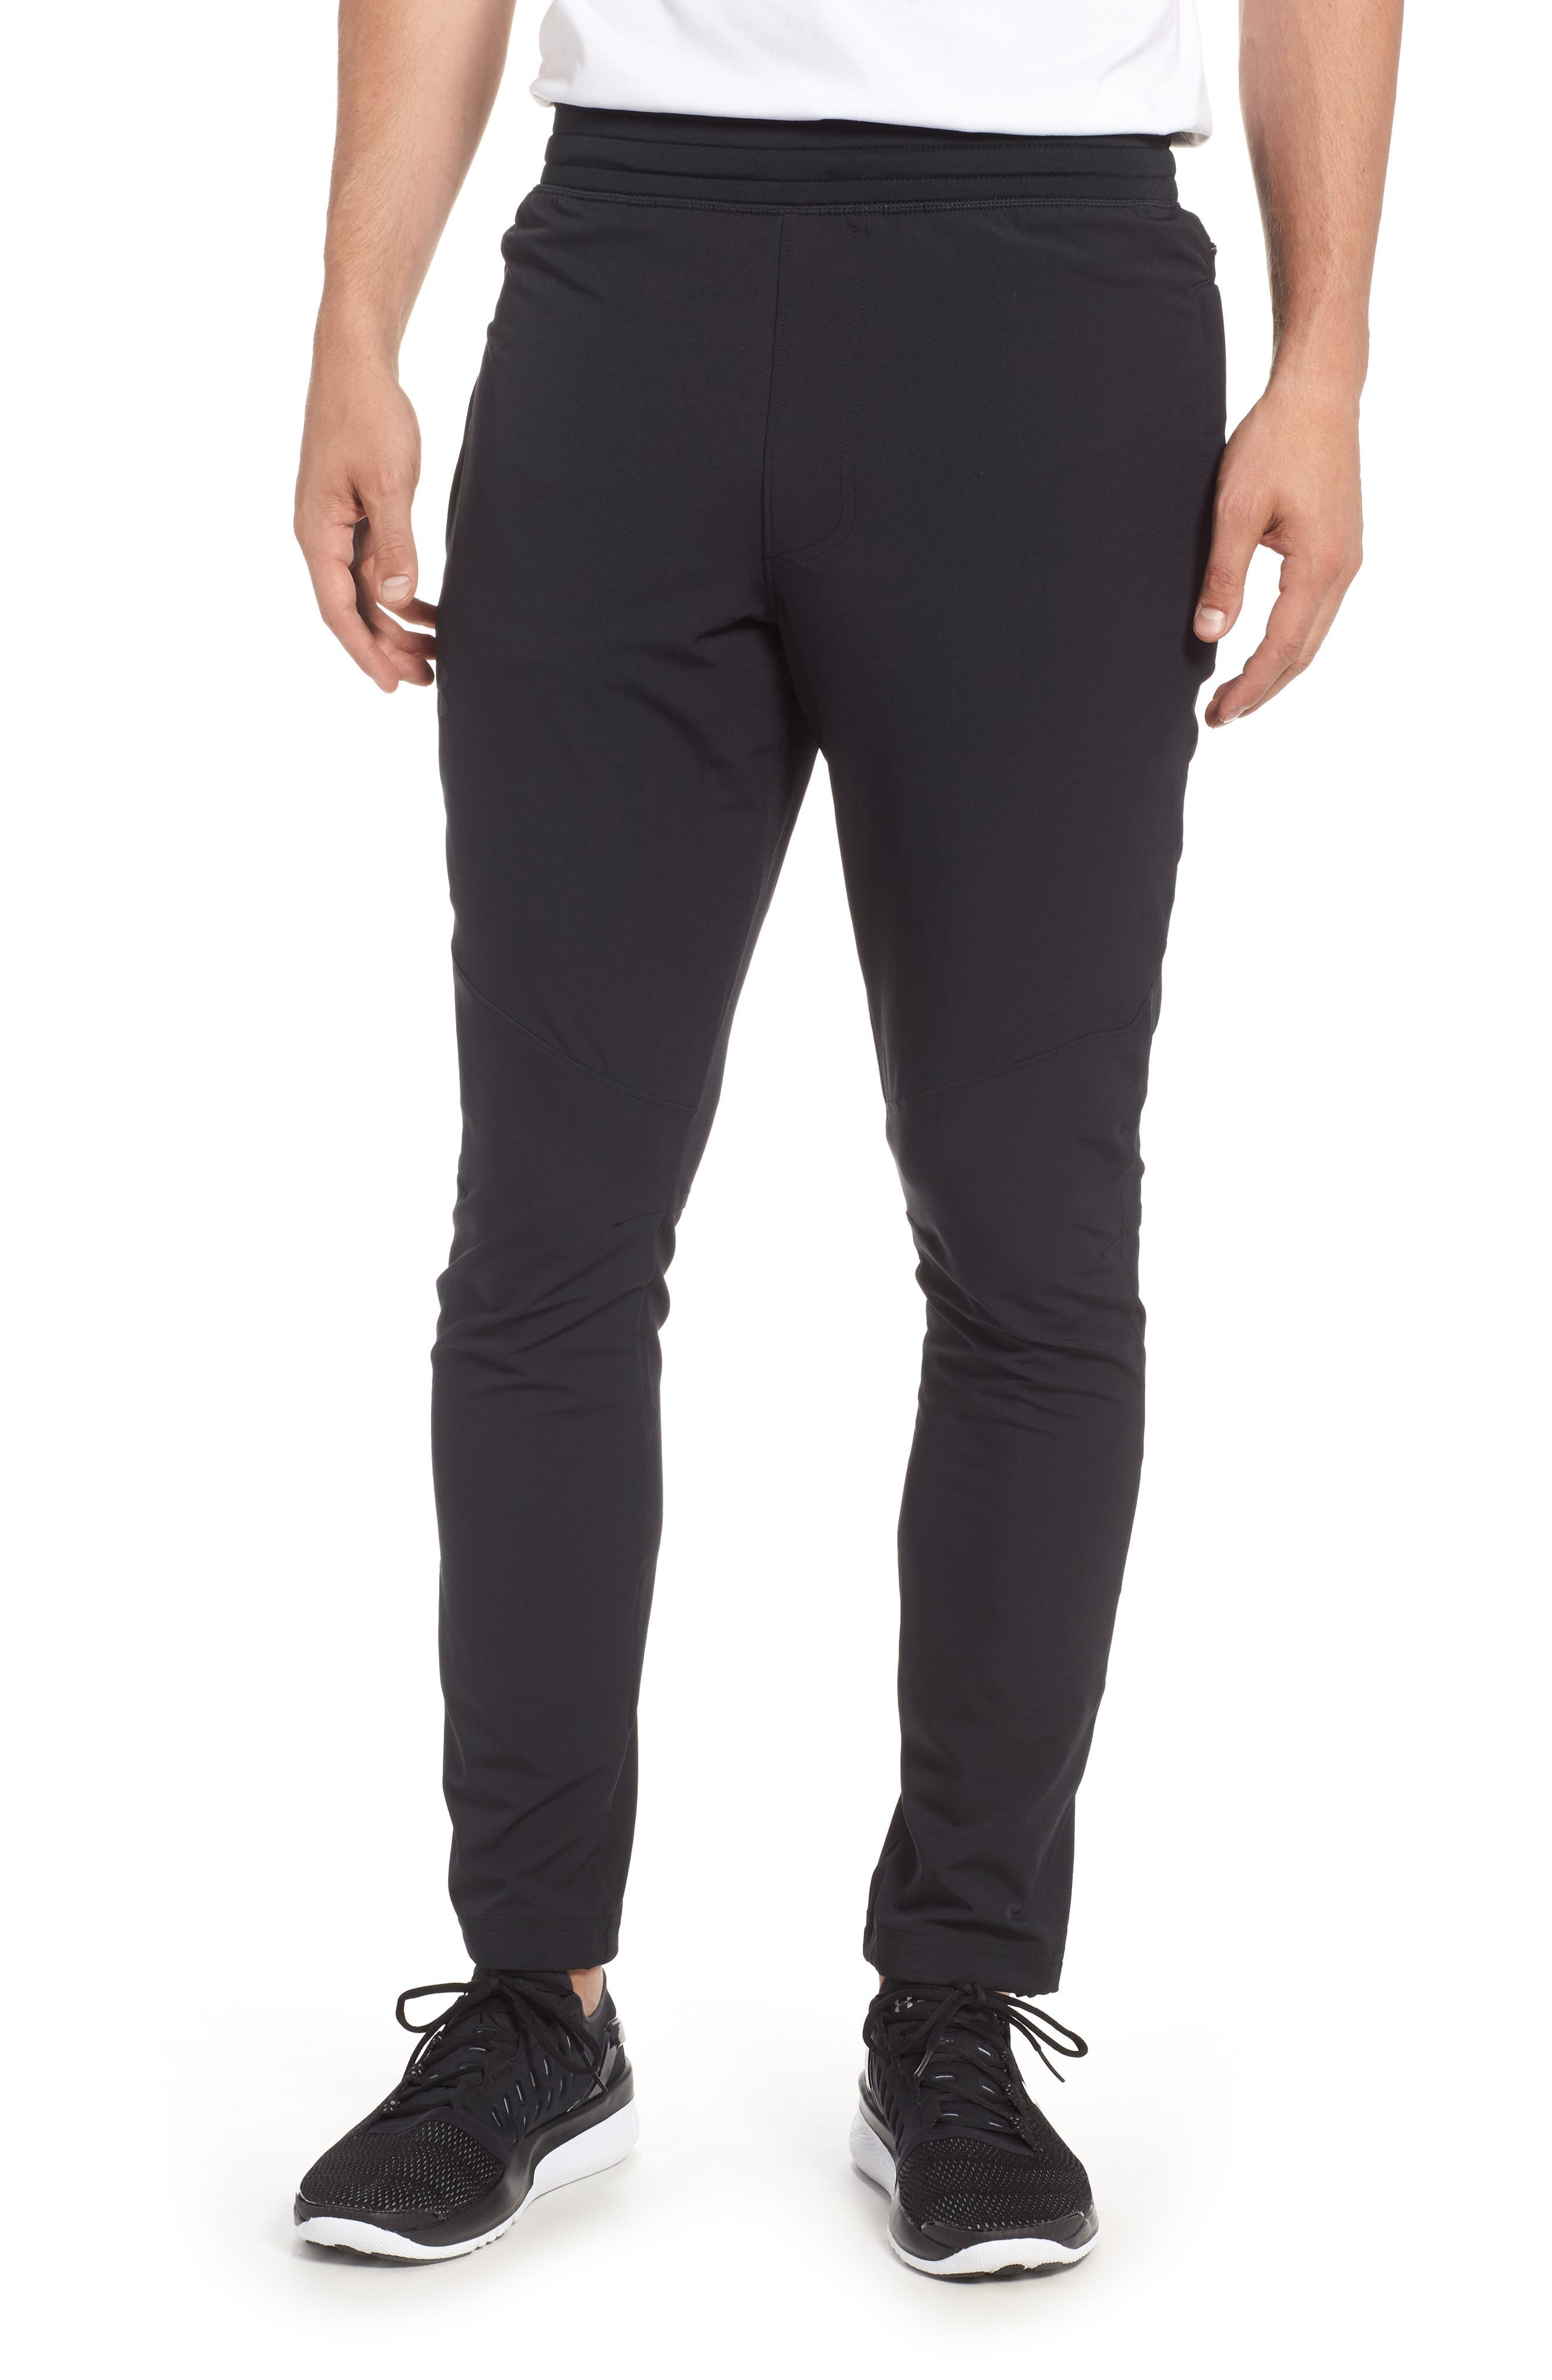 Fitted Woven Training Pants,                             Main thumbnail 1, color,                             BLACK